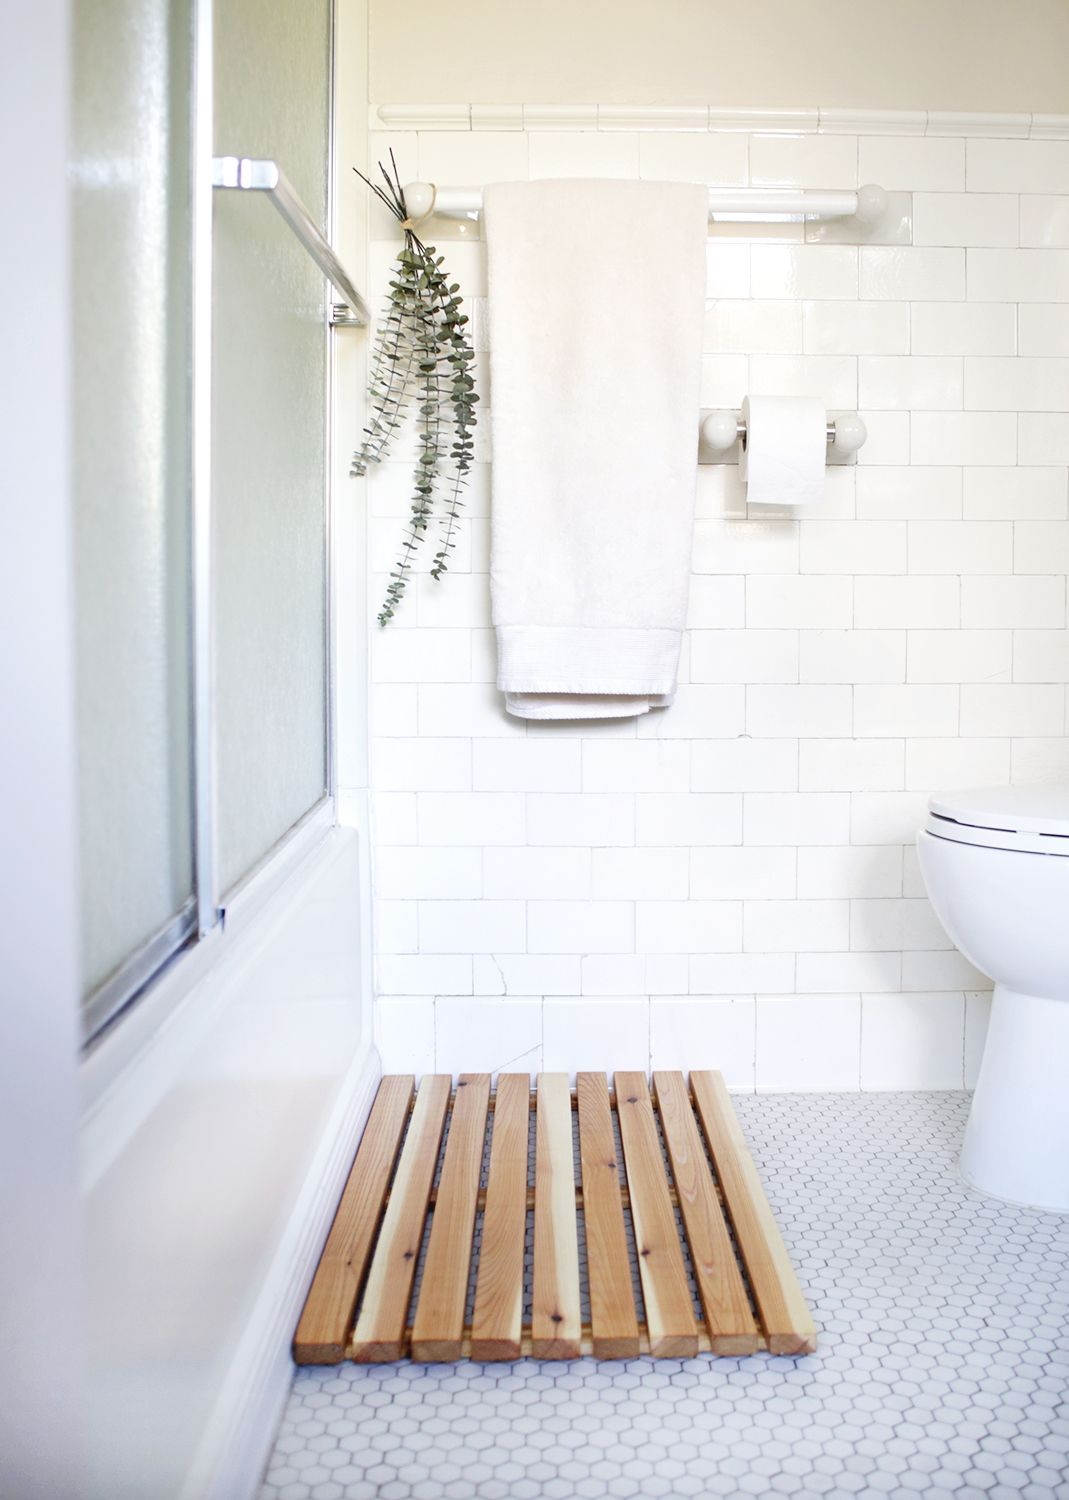 """Resort-inspired style: Spa-inspired bathrooms and rattan furniture bring the vacay vibes home (saves for """"spa bathrooms"""" +269%)"""